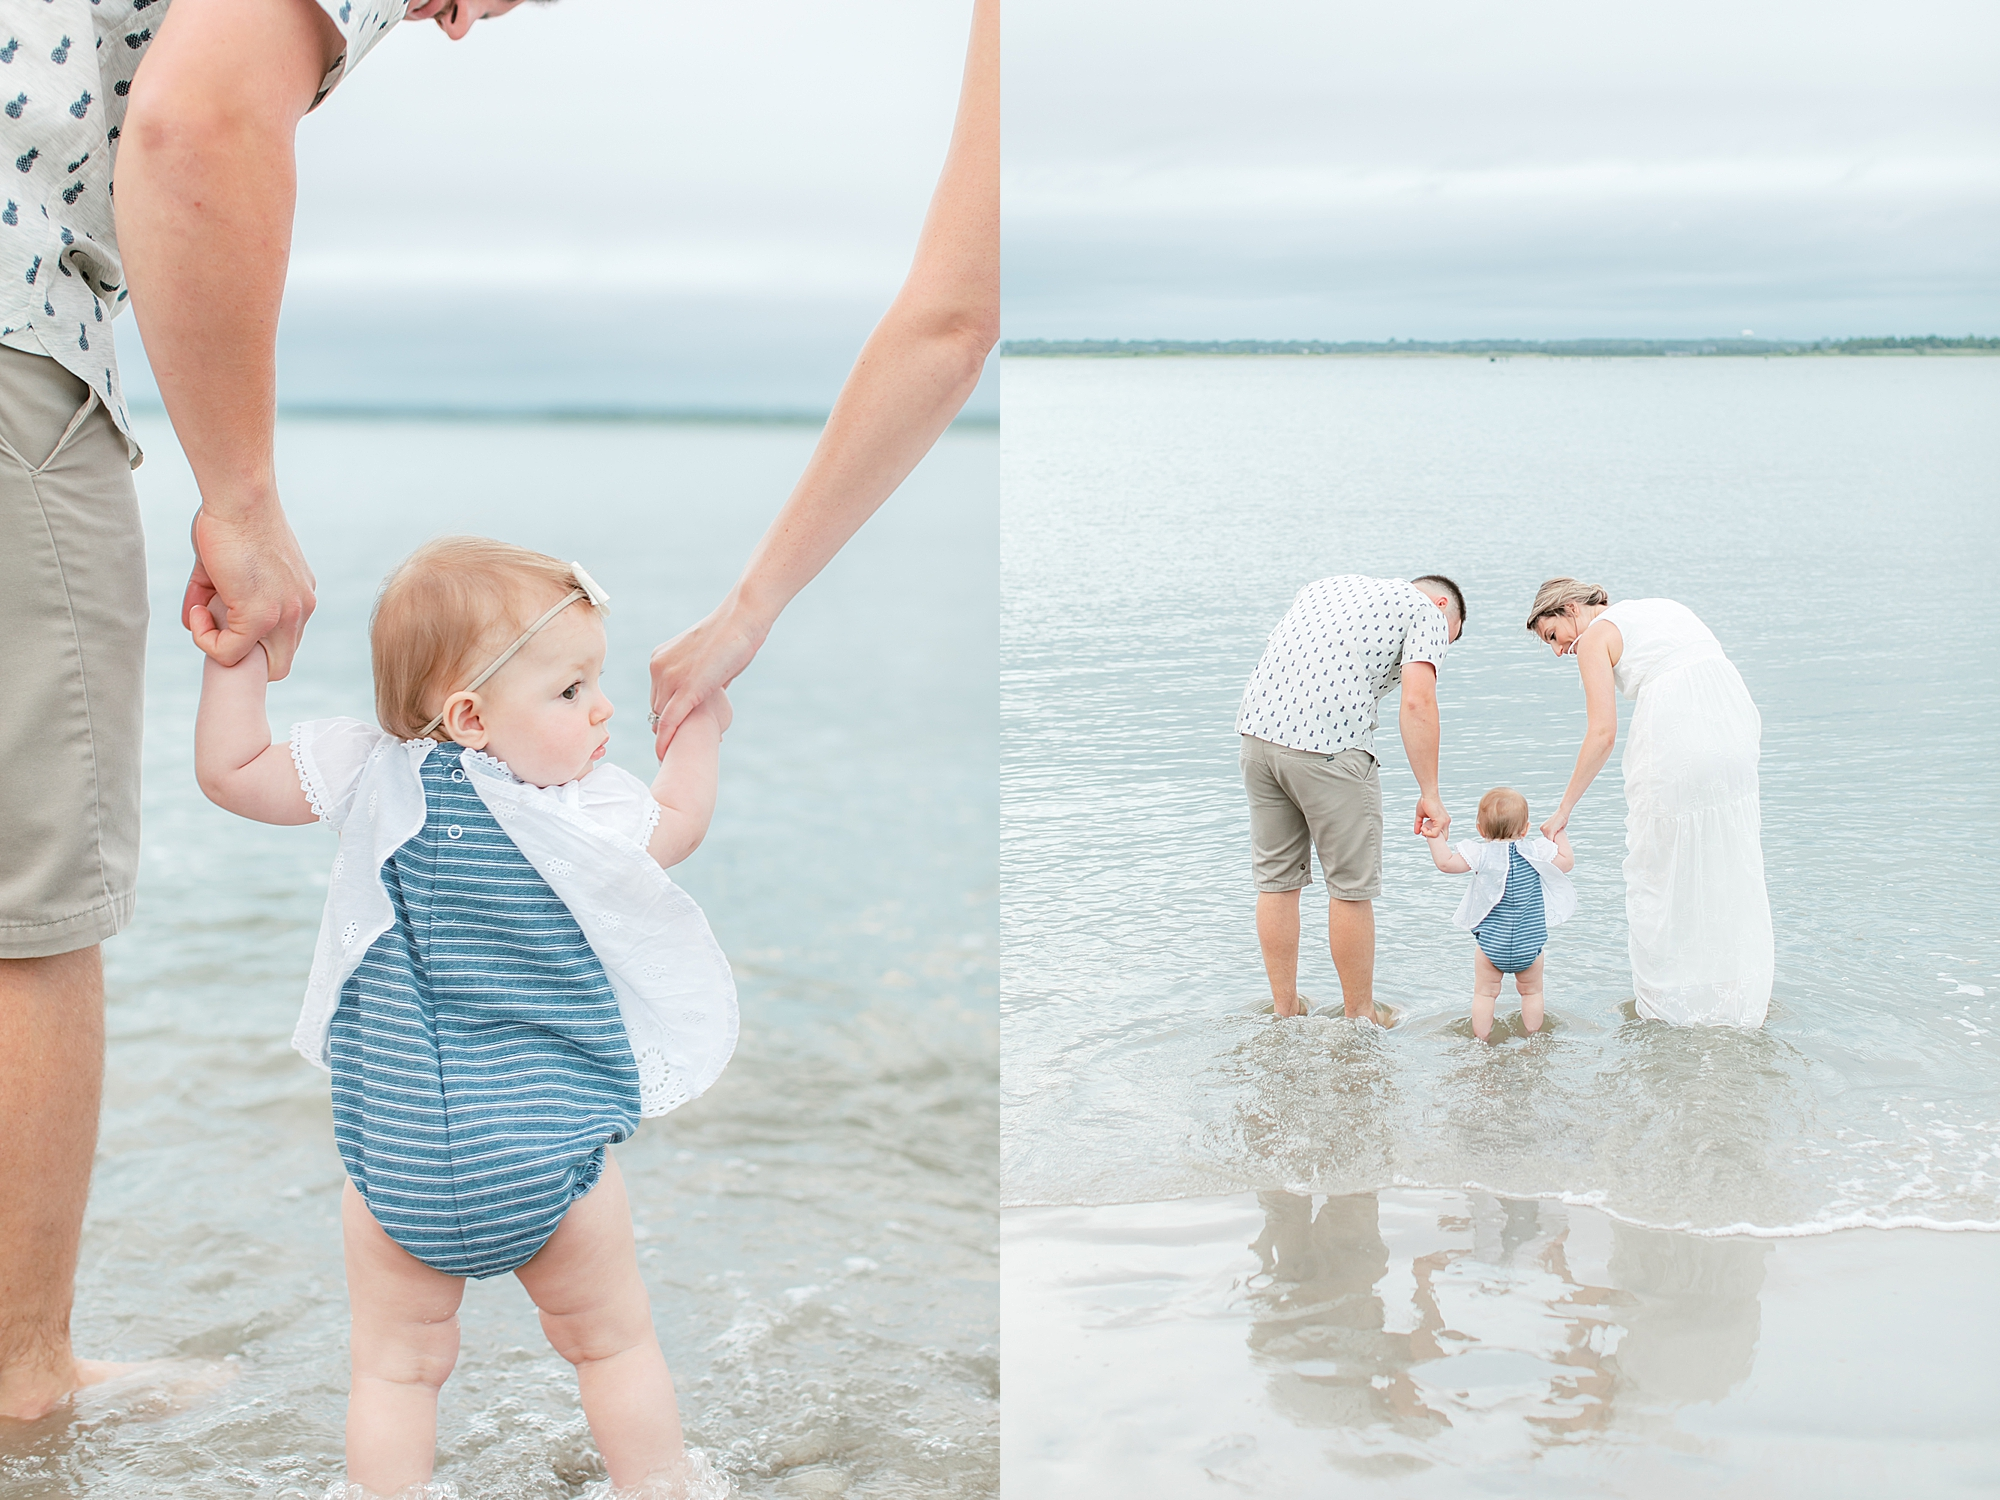 Beach Family Photography OCNJ Ocean City NJ by Magdalena Studios 0025 1